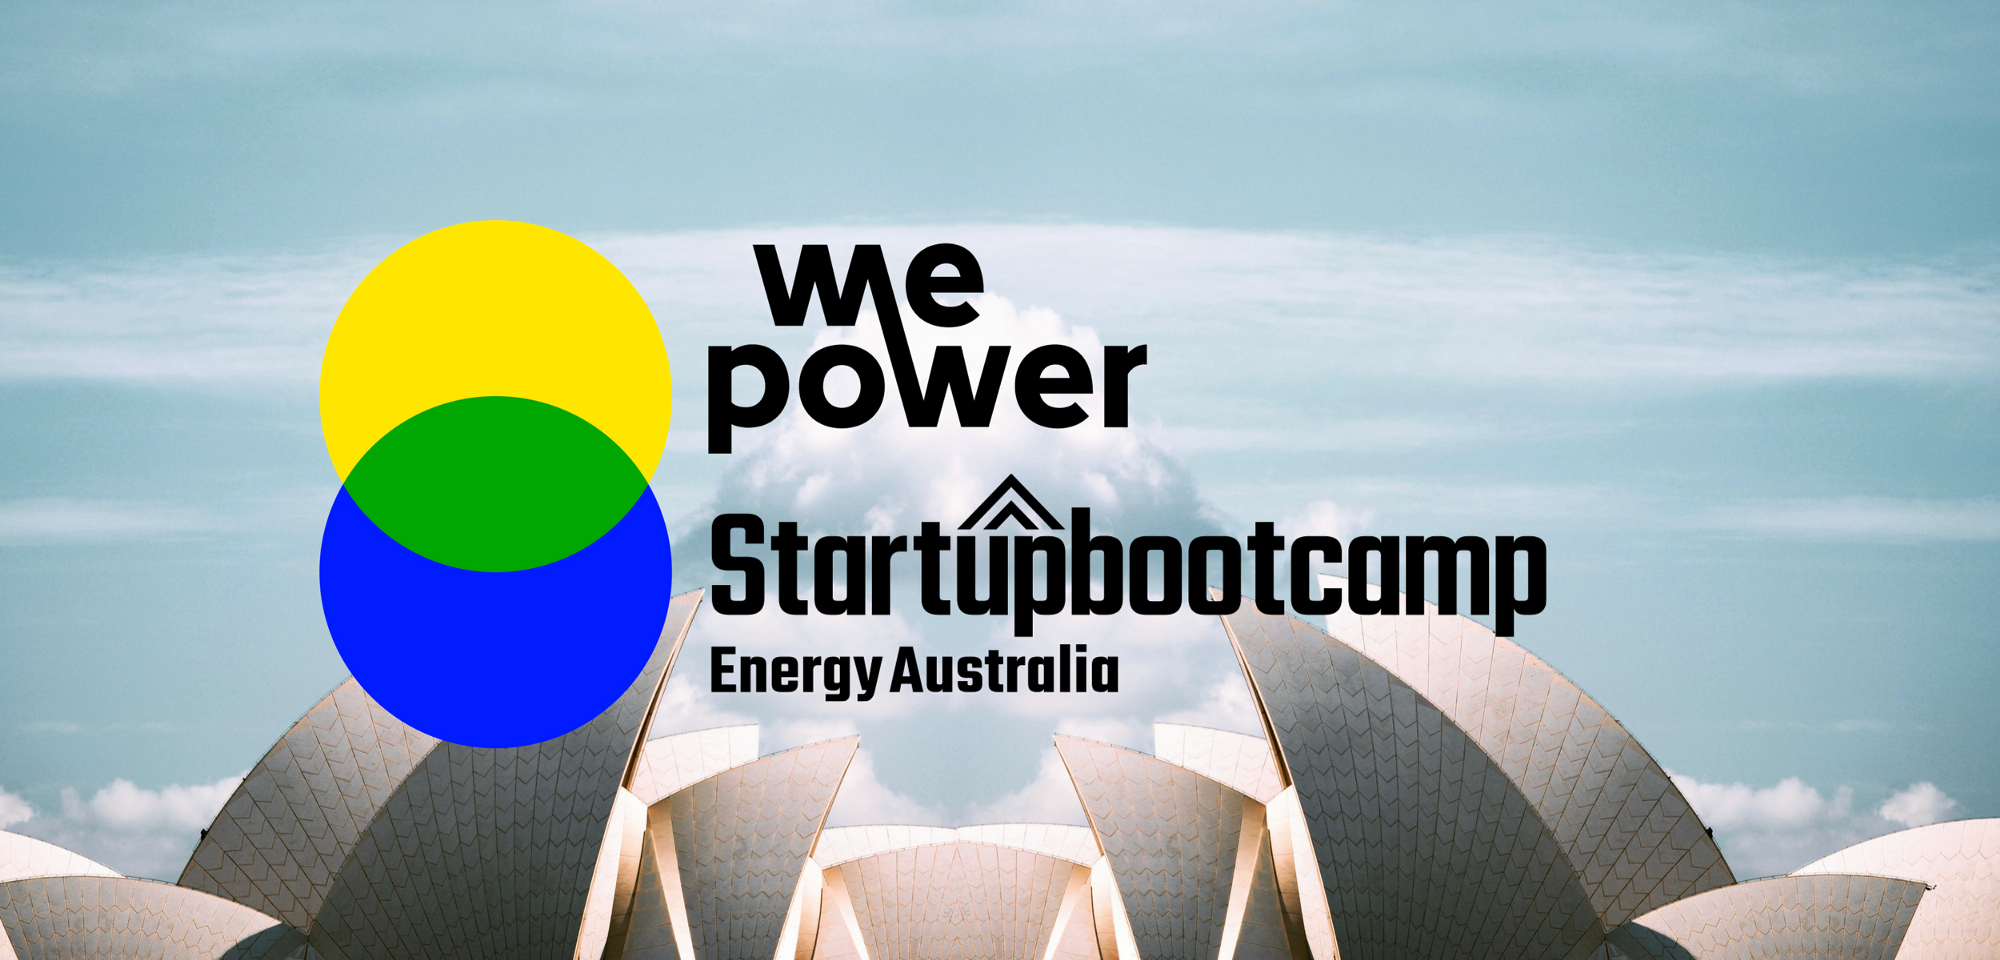 Entering Australia with the support of SBC and local energy companies!